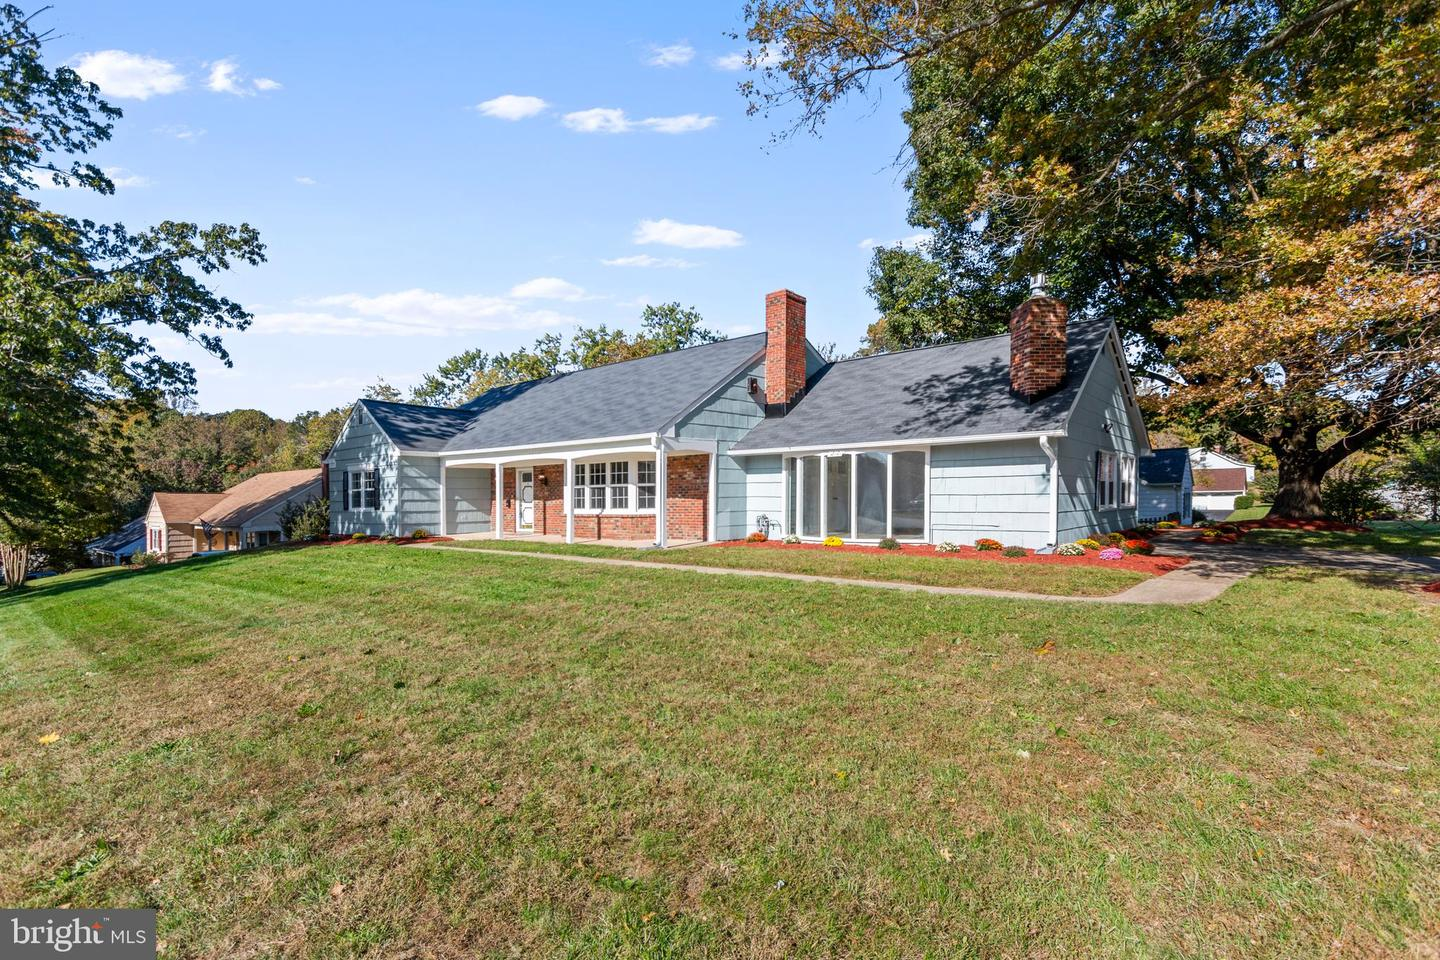 12017 LONG RIDGE LANE, BOWIE, Maryland